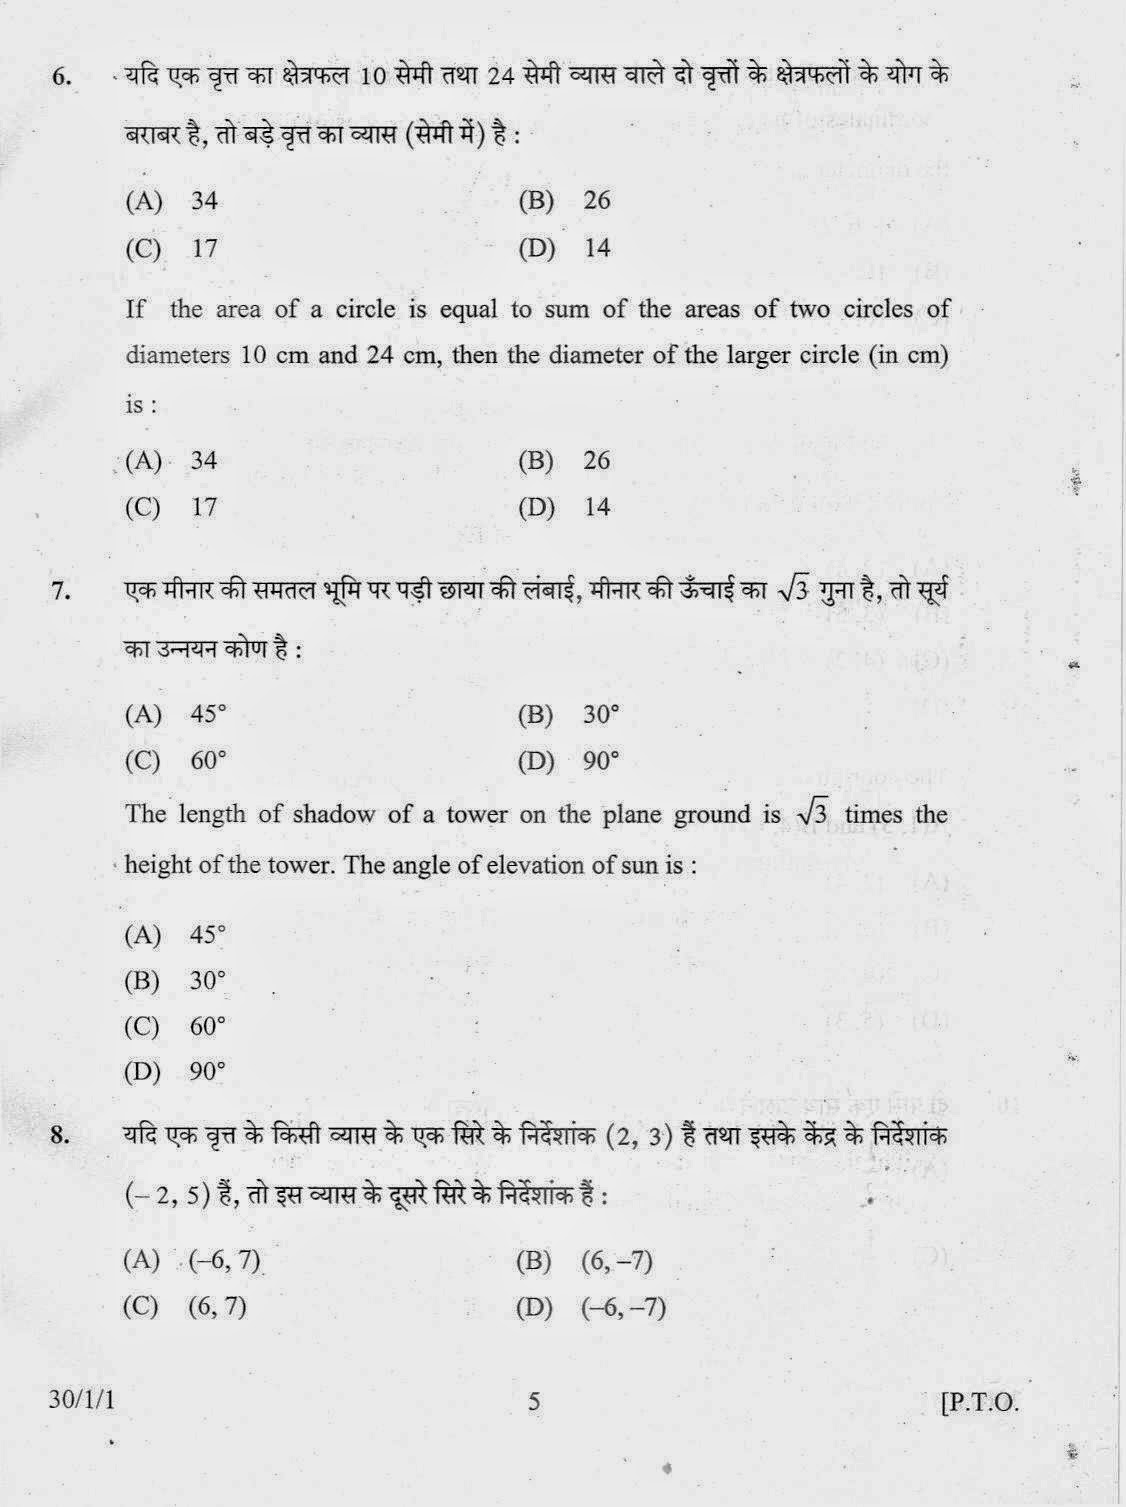 maths 2012 paper 2012 english paper 2 comprehension passage answerspdf, 12th oct 2015,  download 2012 english paper 2 comprehension passagepdf, 12th oct 2015.